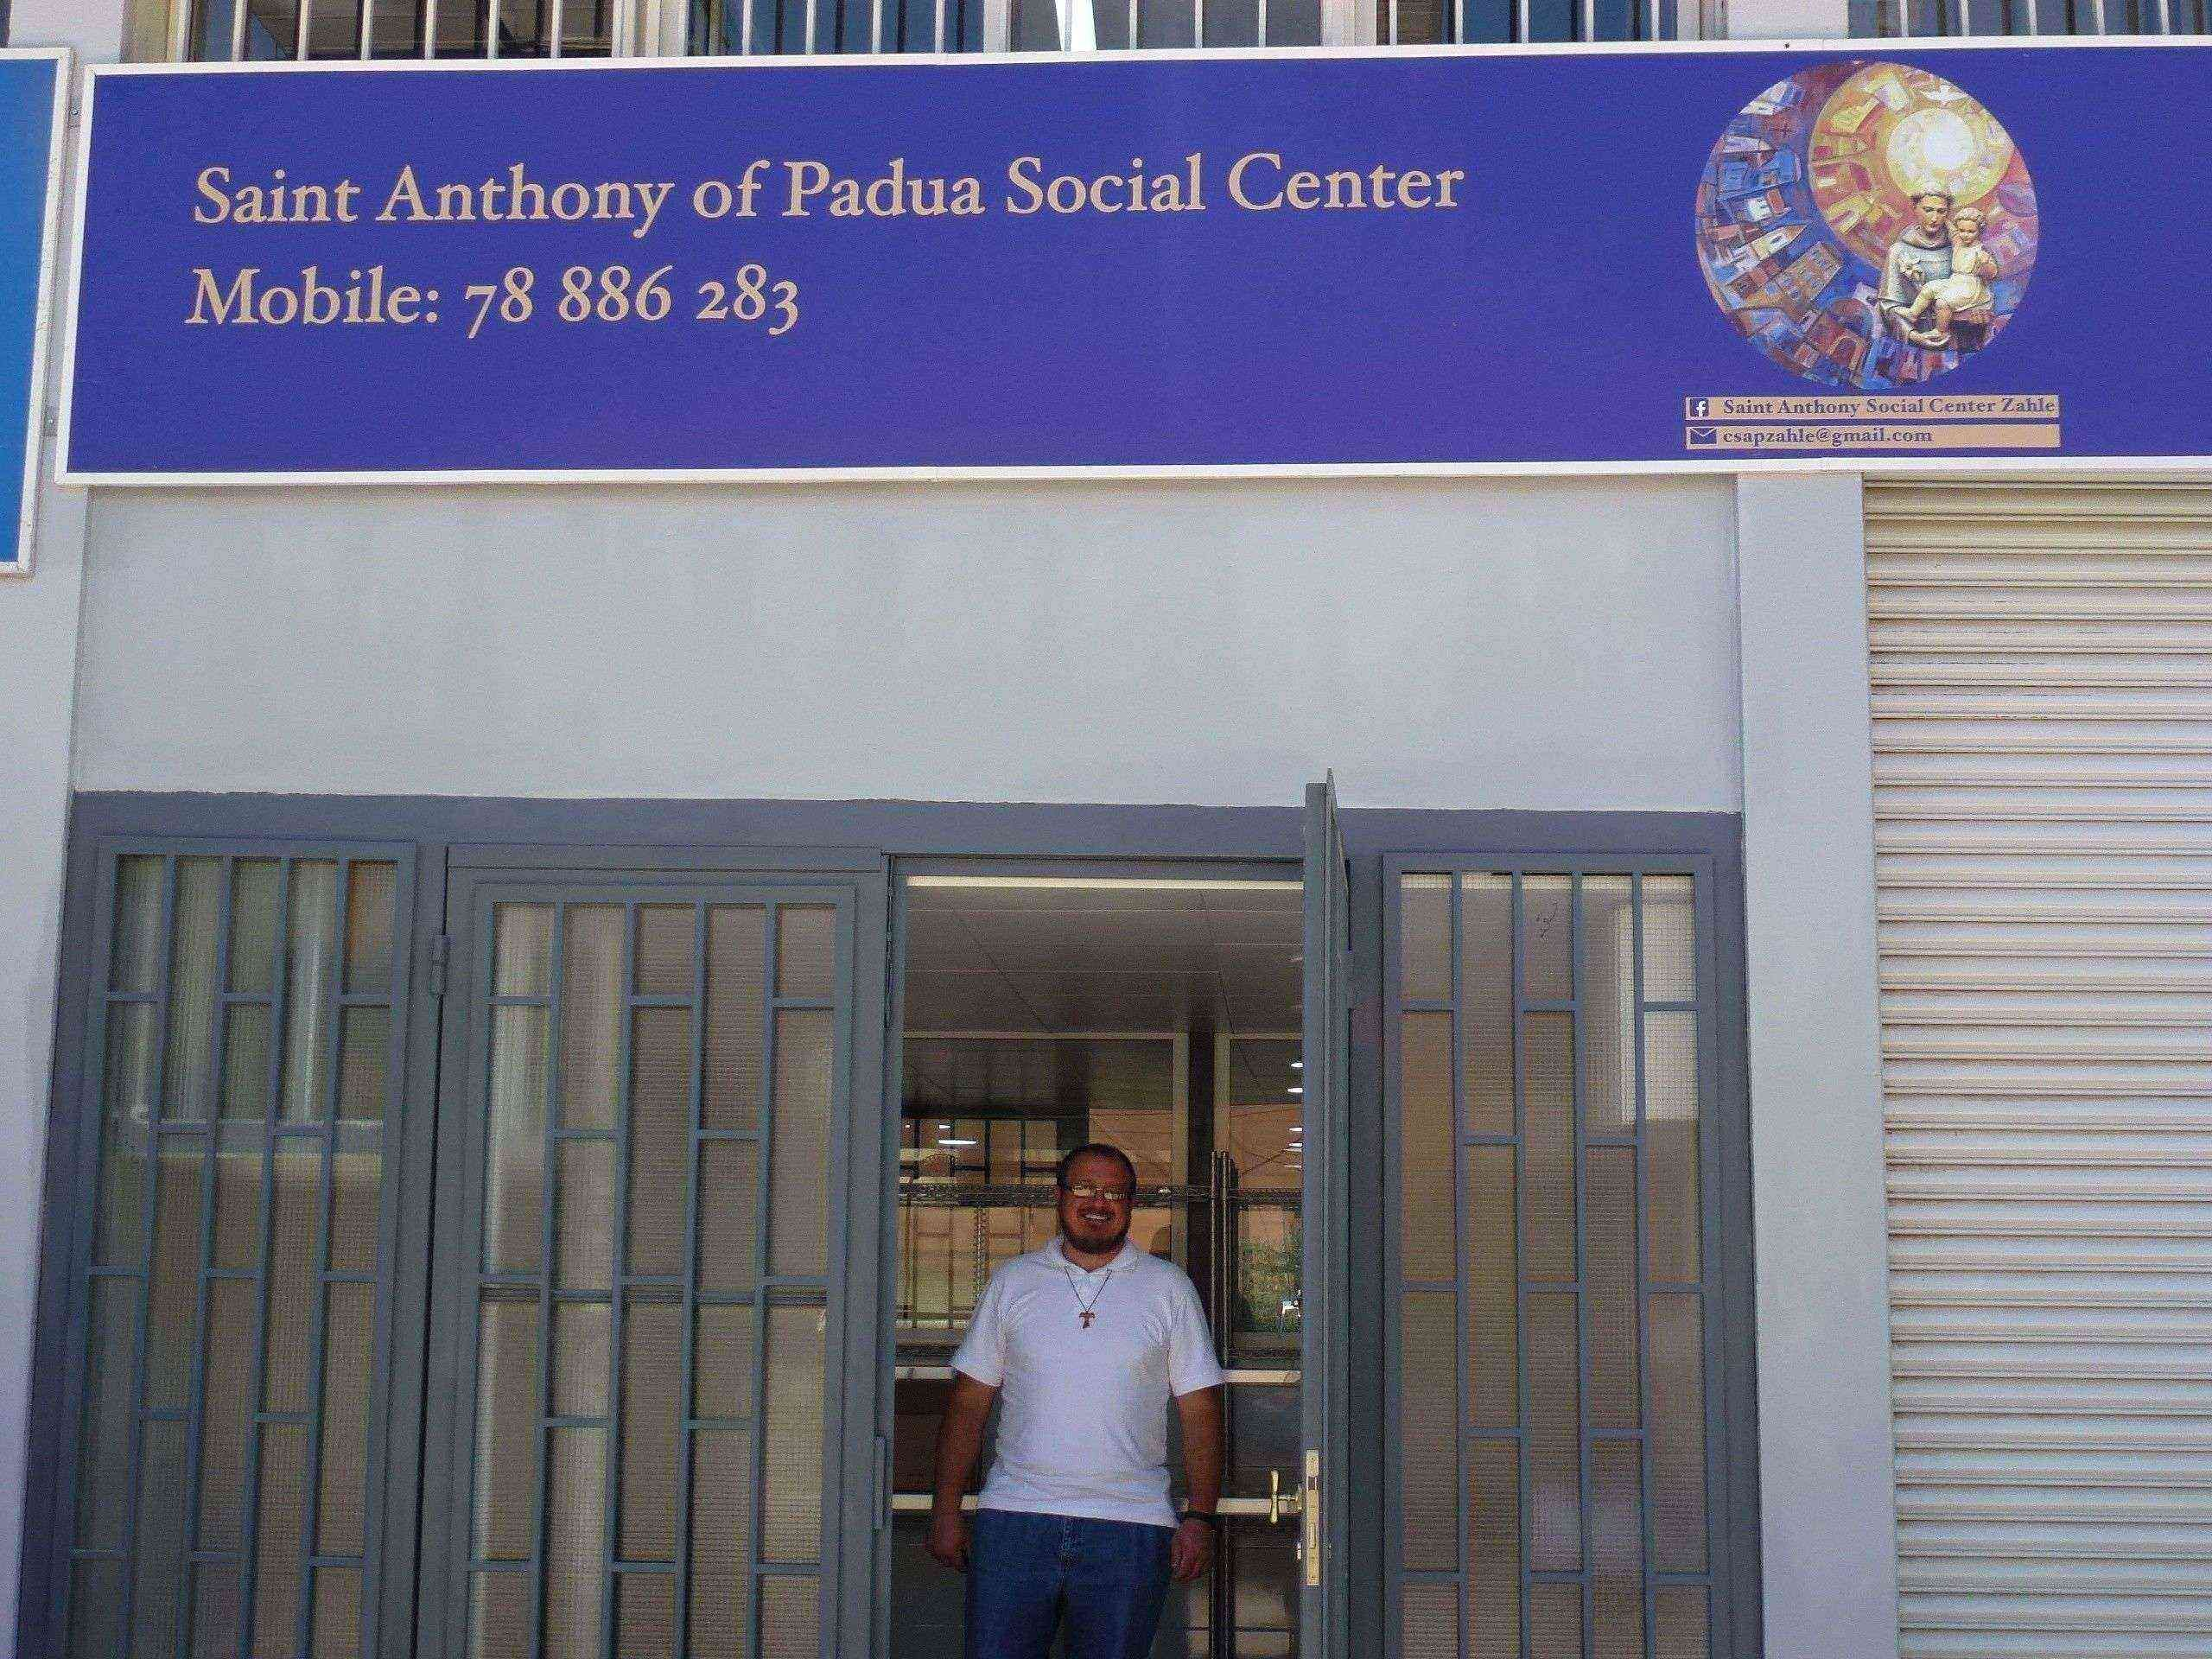 L'ingresso del Saint Anthony of Padua Social Center, nella zona industriale di Zahle, in Libano. -